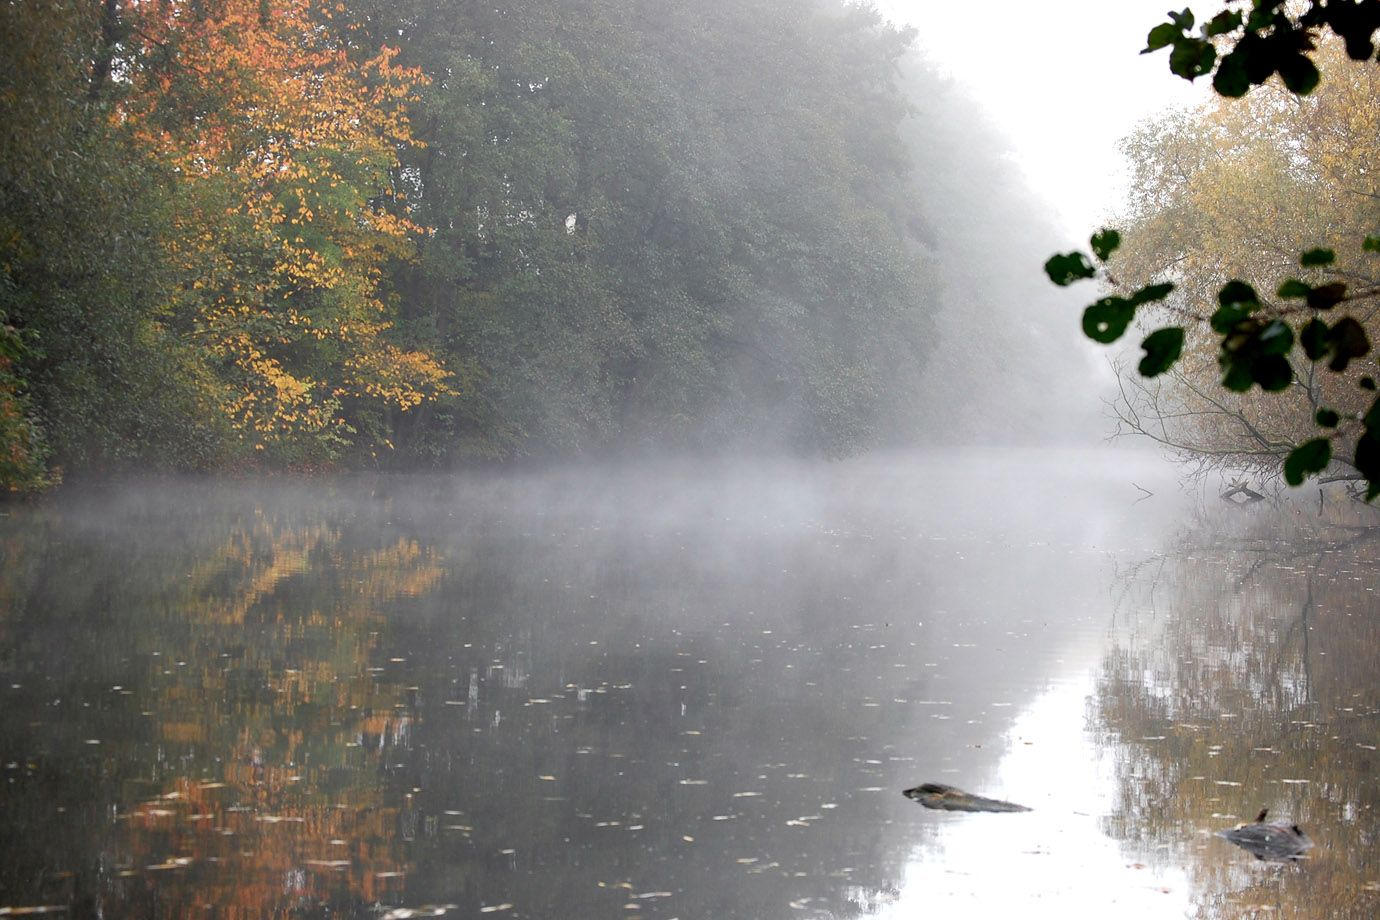 Autumn morning: after the first cold night waft of mist rise from the water.